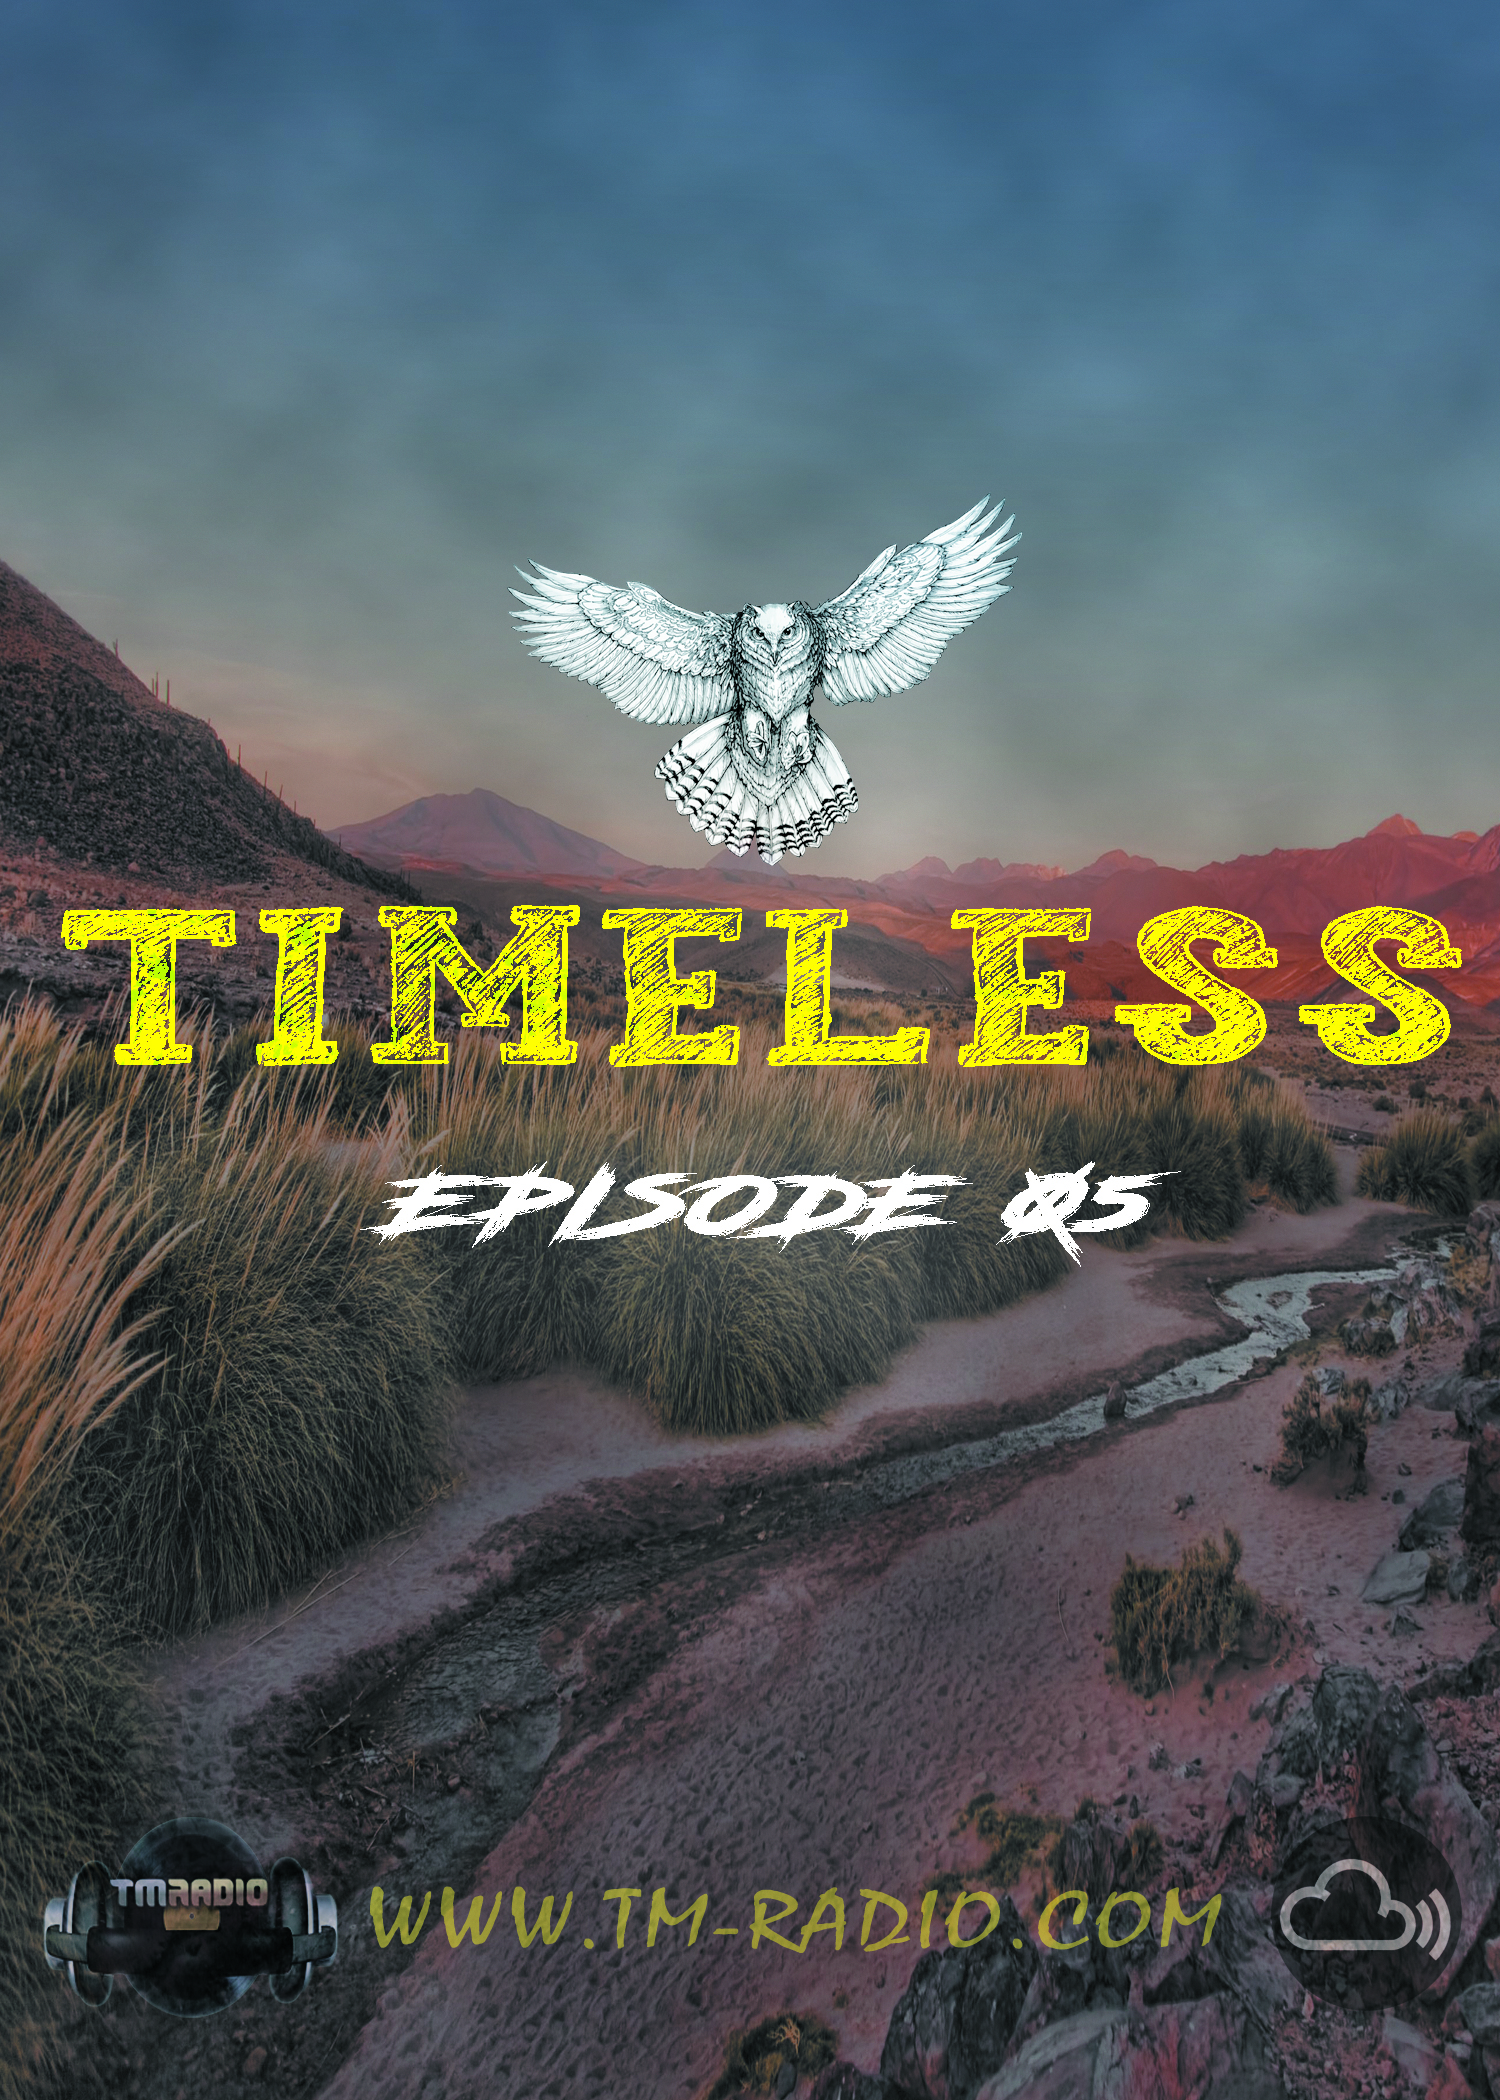 Timeless :: Cris Rosales - Timeless Radioshow Ep. 05 - 06-04-2021 (aired on April 6th) banner logo